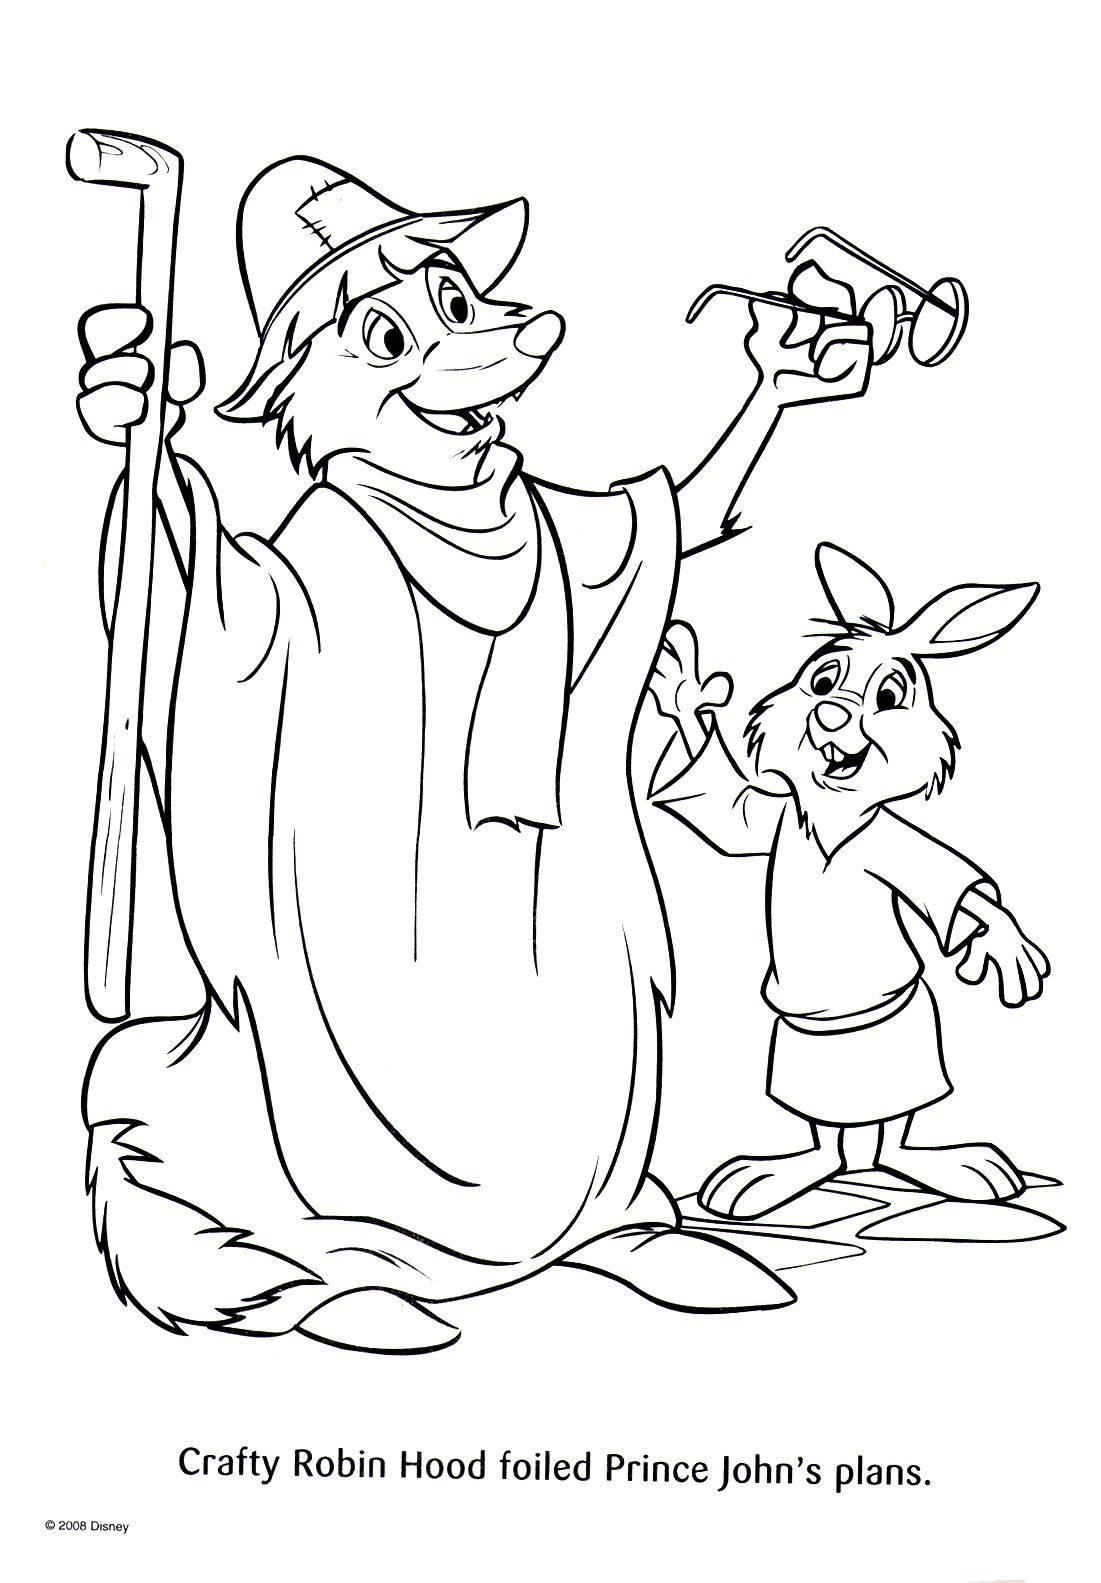 Disney Coloring Pages Posts Tagged Robin Hood In 2021 Horse Coloring Pages Disney Coloring Pages Coloring Pages